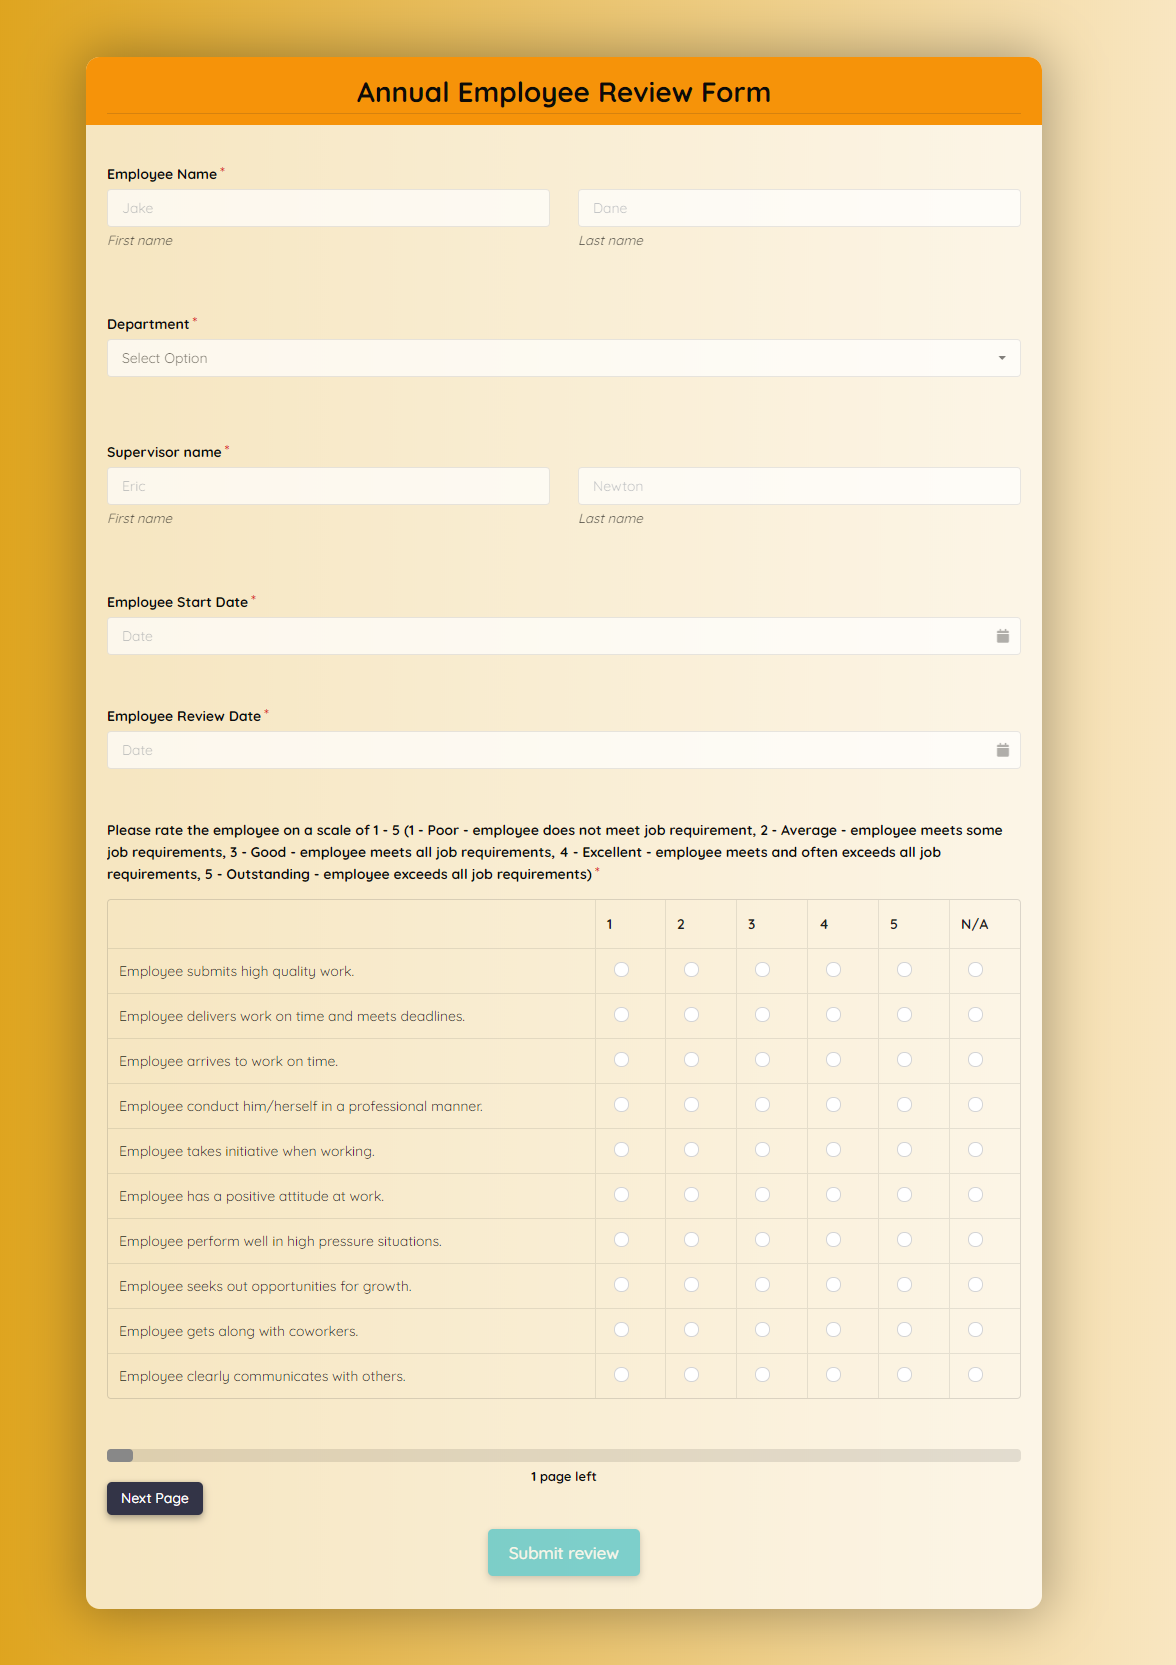 Annual Employee Review Form Template template